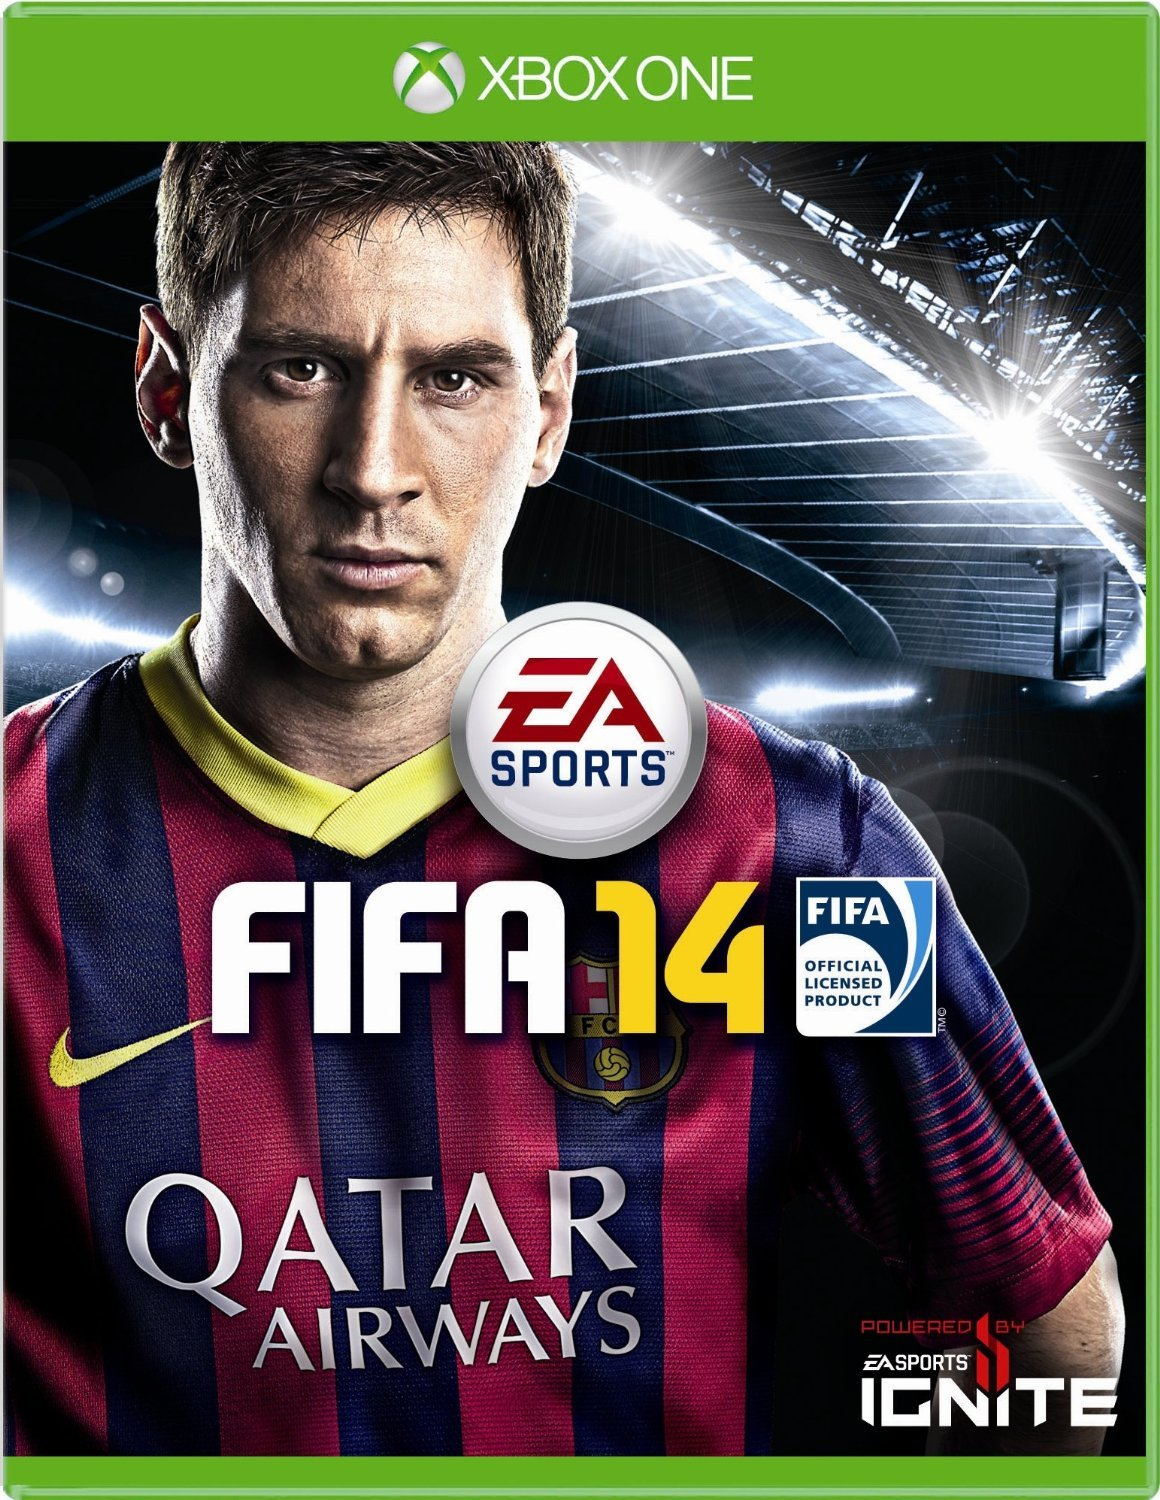 FIFA 14 - Xbox One by Electronic Arts (Image #1)